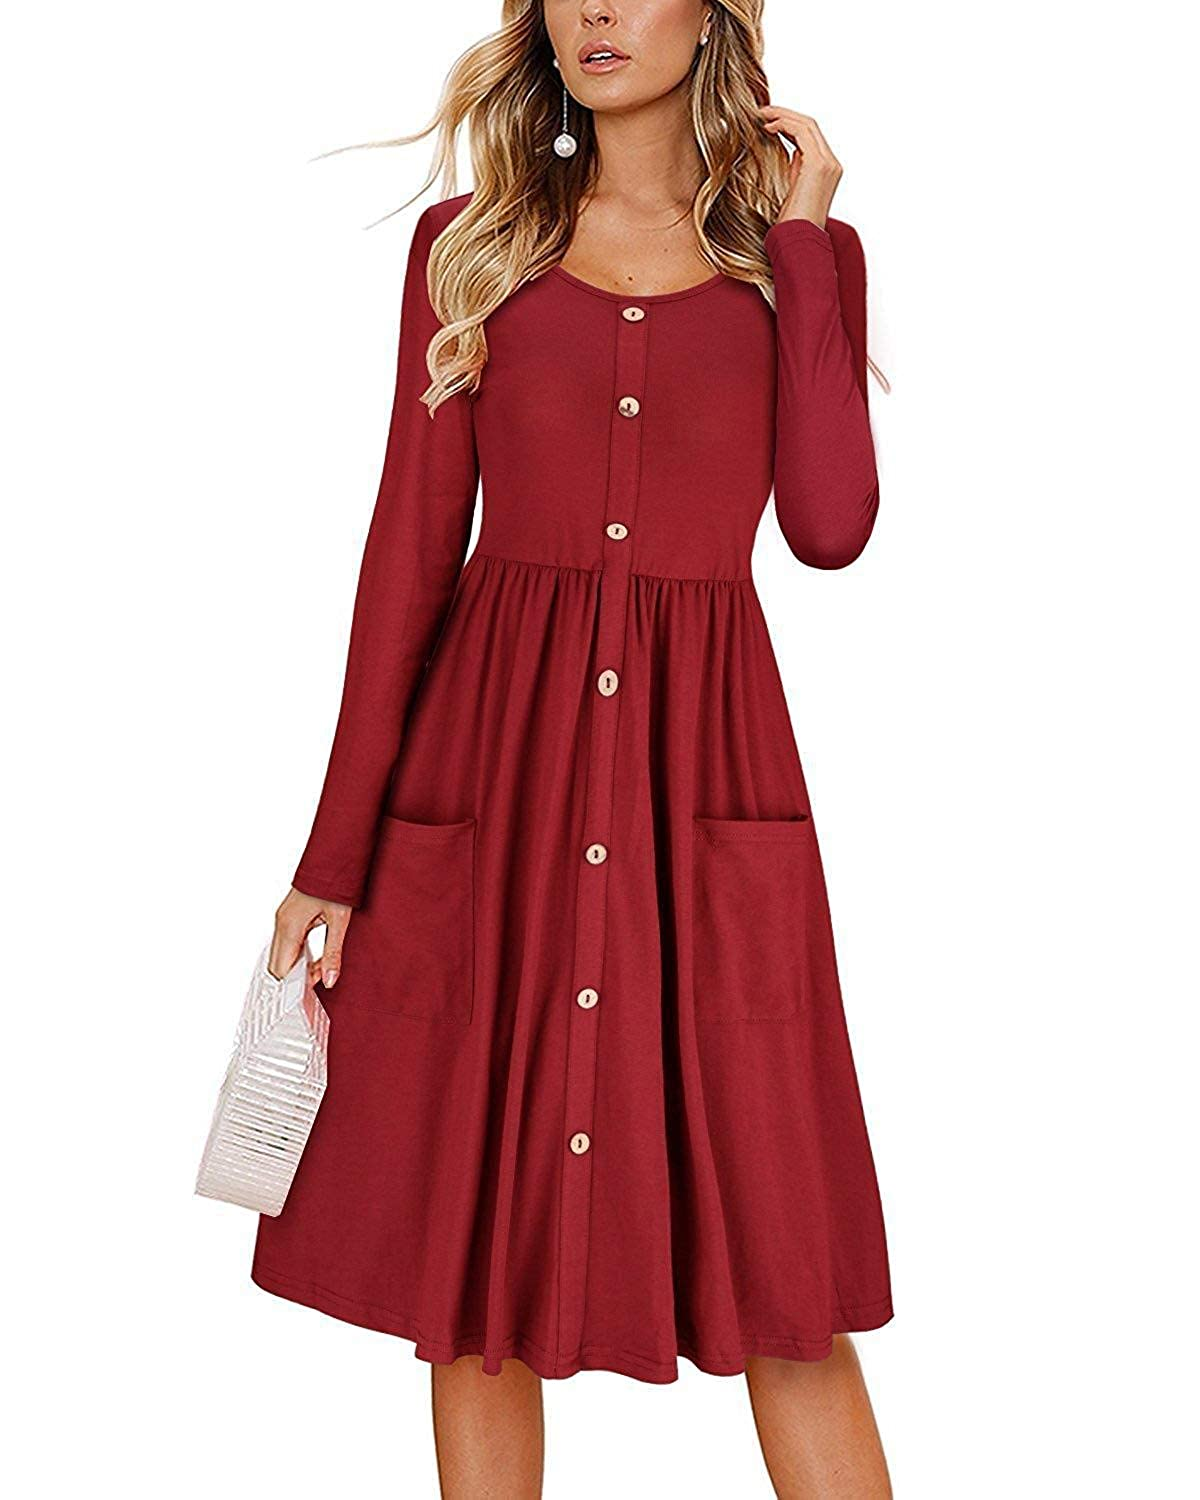 INIBUD Long Sleeve Skater Dresses for Women Button Down with Pockets